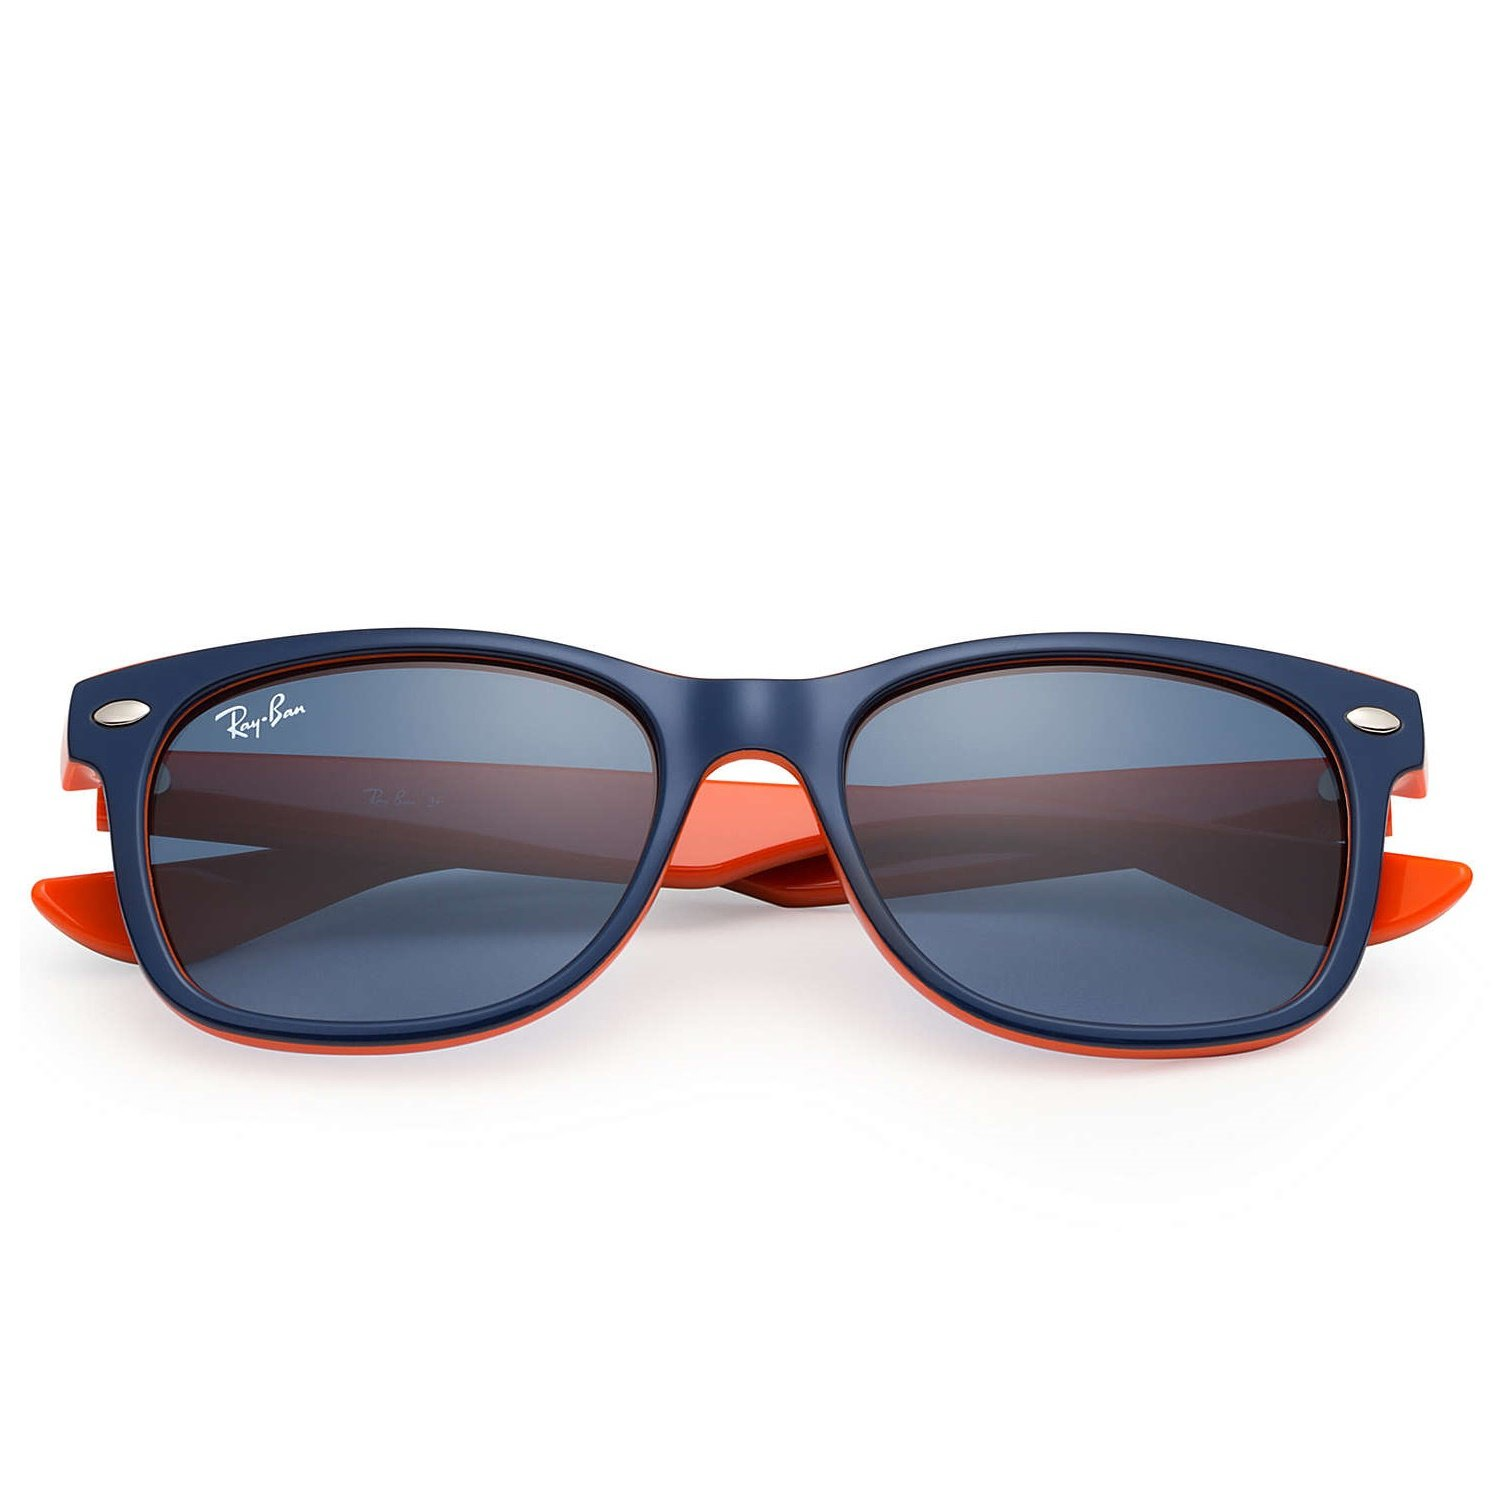 Ray-Ban Kids New Wayfarer Sunglasses - Navy/Orange - 50mm